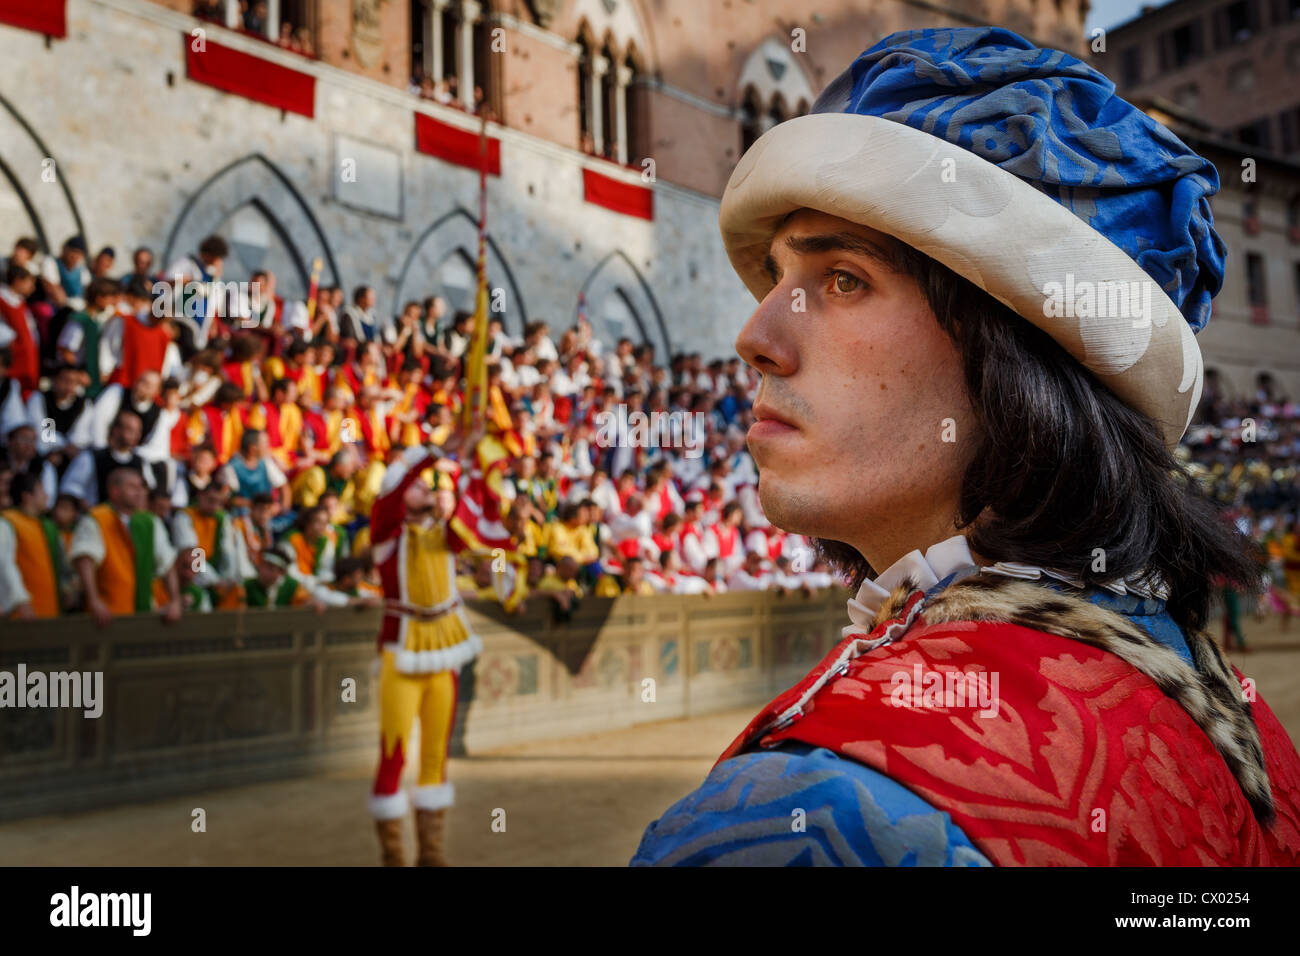 Historic Palio horse race, participants carrying banners,  Piazza Il Campo, Siena, Italy - Stock Image